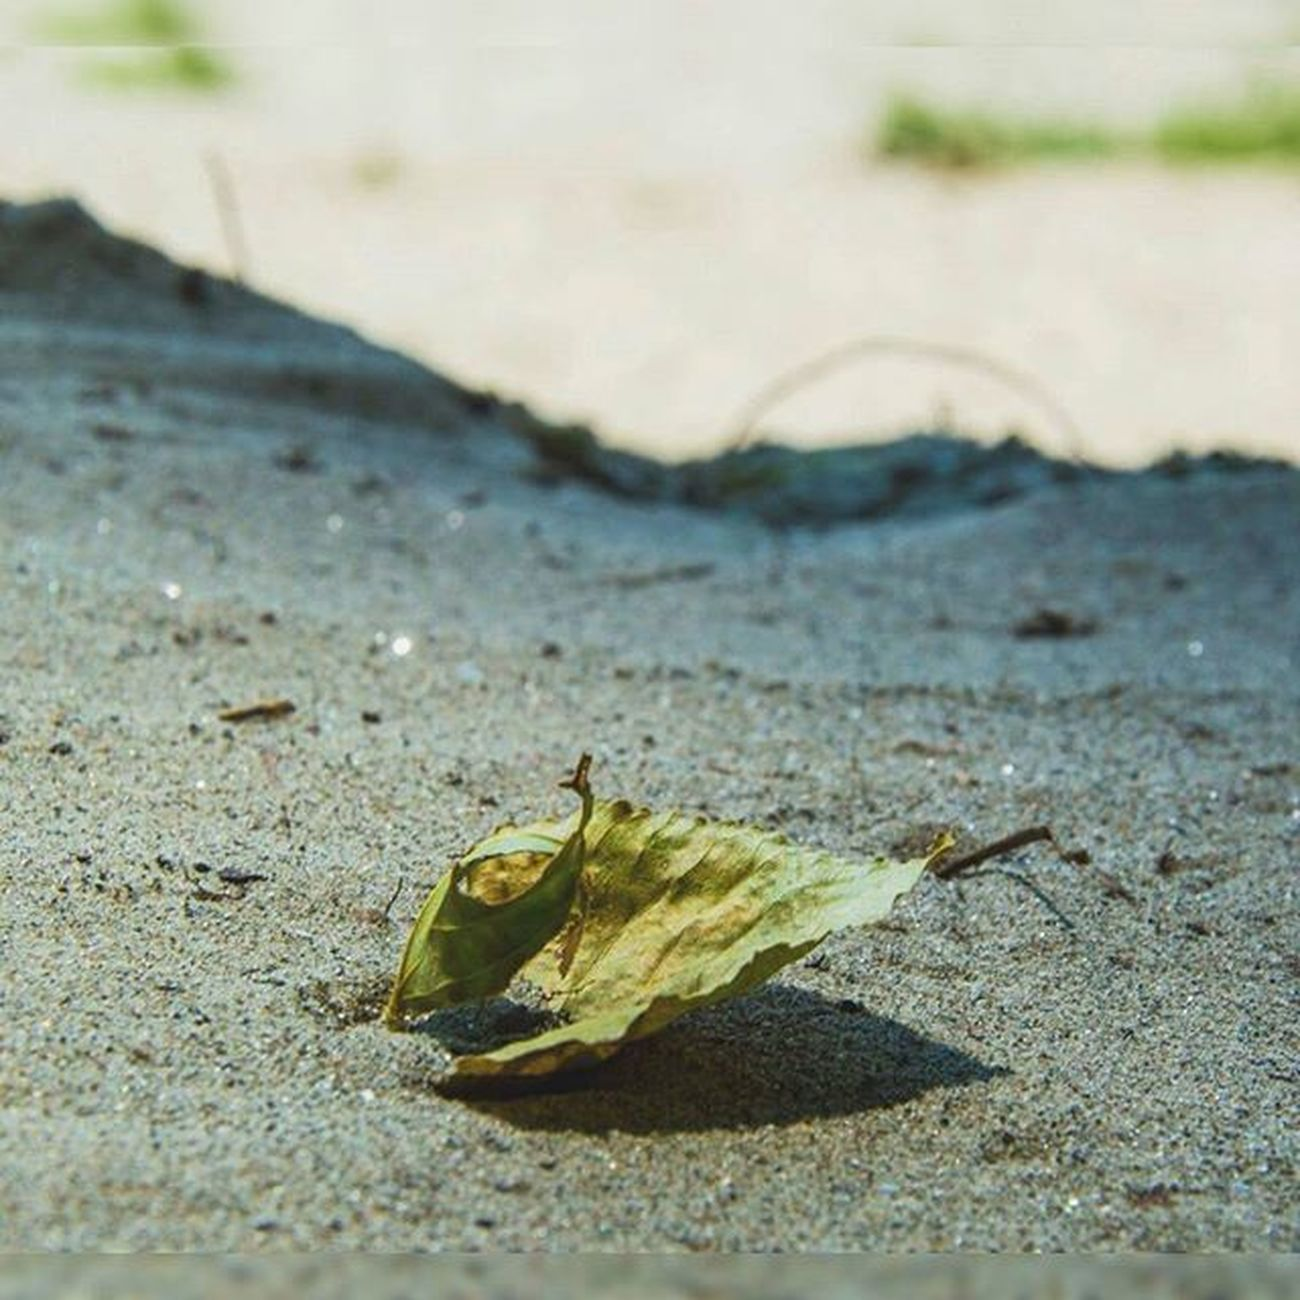 Worldmastershotz Worldmastershotz_nature Leaf Leaves sand beach beautiful instagram photooftheday photography natgeo photography netgeo naturelovers naturelover photo fotografia naturaleza summer 2015 hot burned